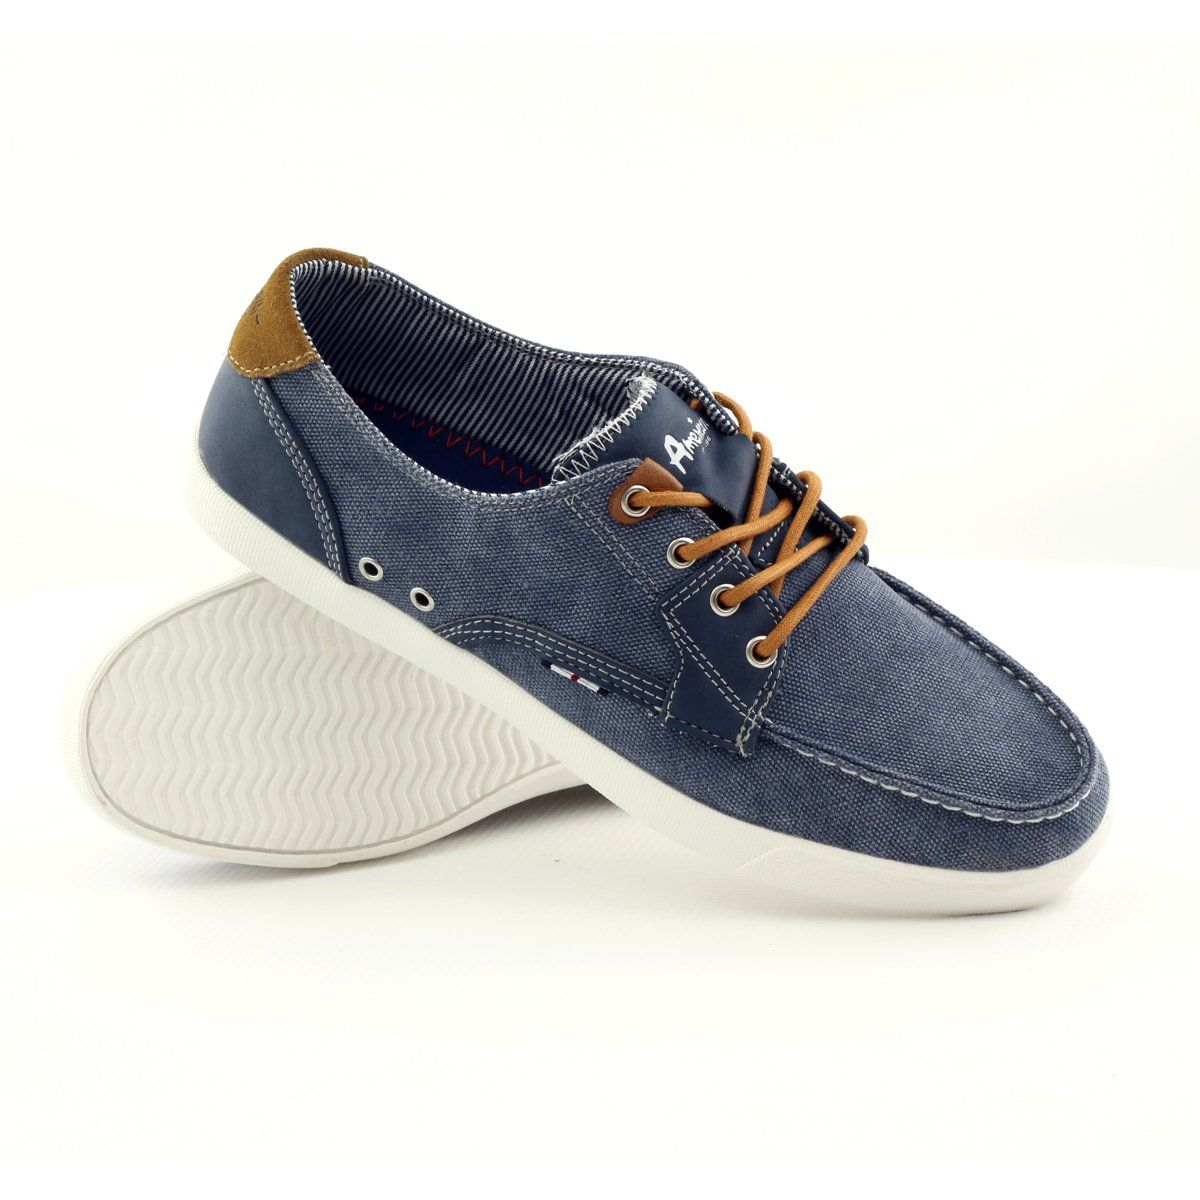 American Club American 205081 Men S Textile Tied Loafers Navy Blue Navy Heels Club Shoes Loafers